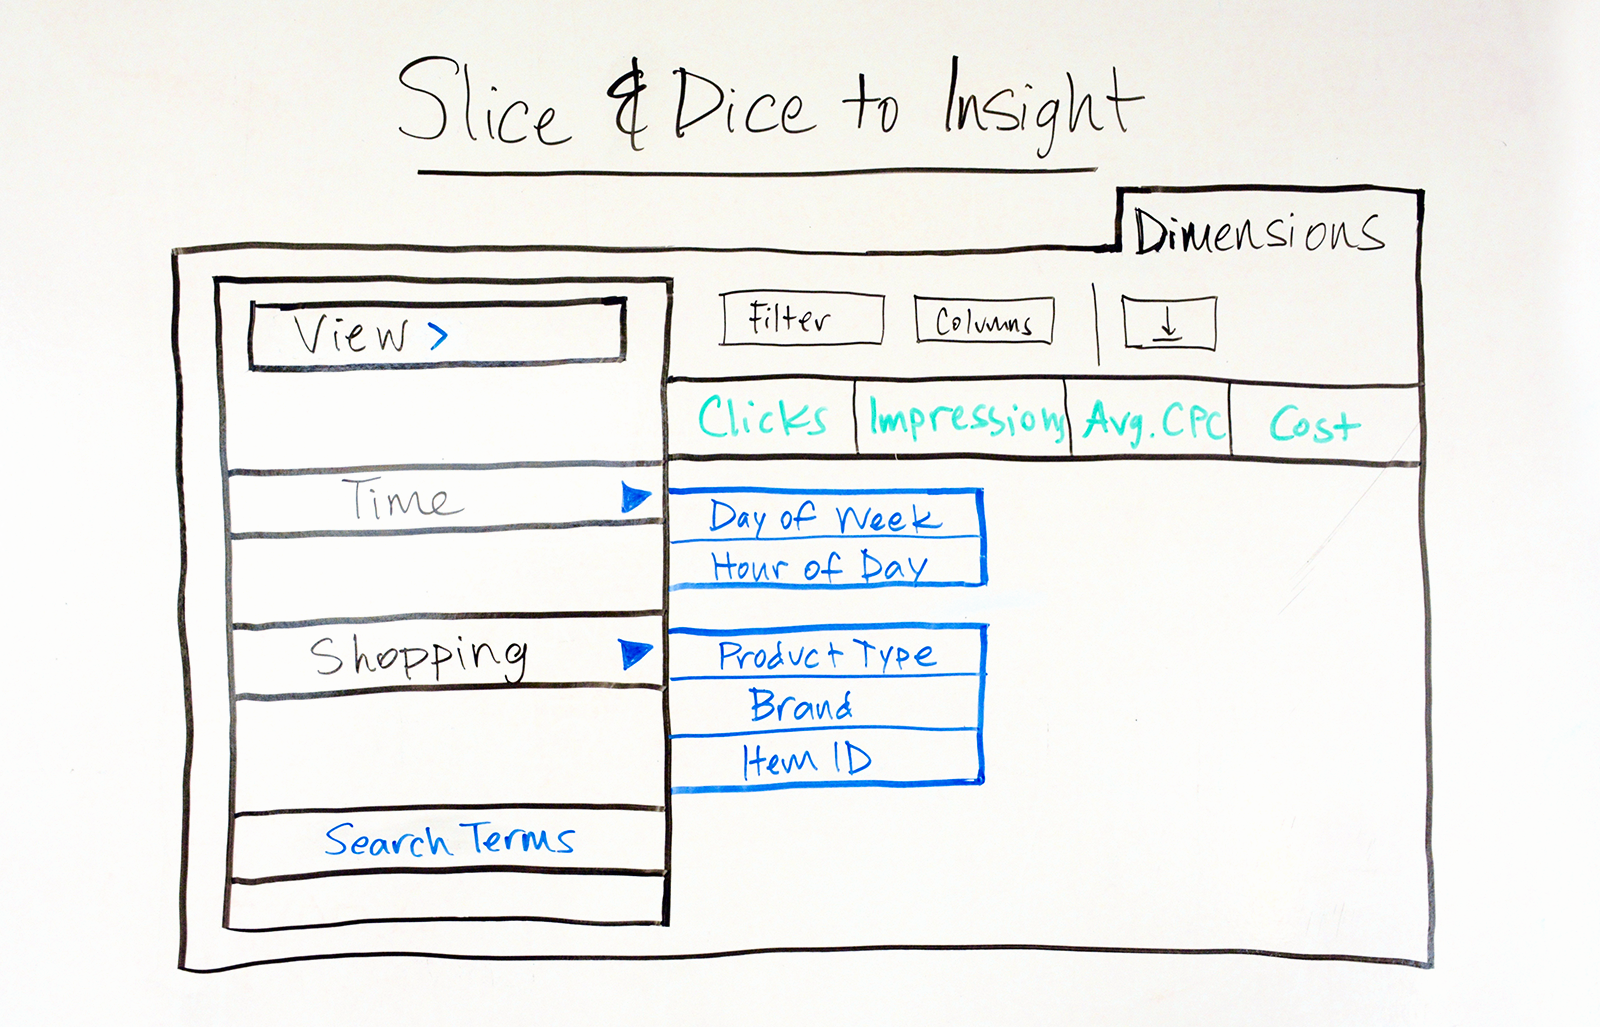 Slice and dice to insight in the adwords dimensions tab